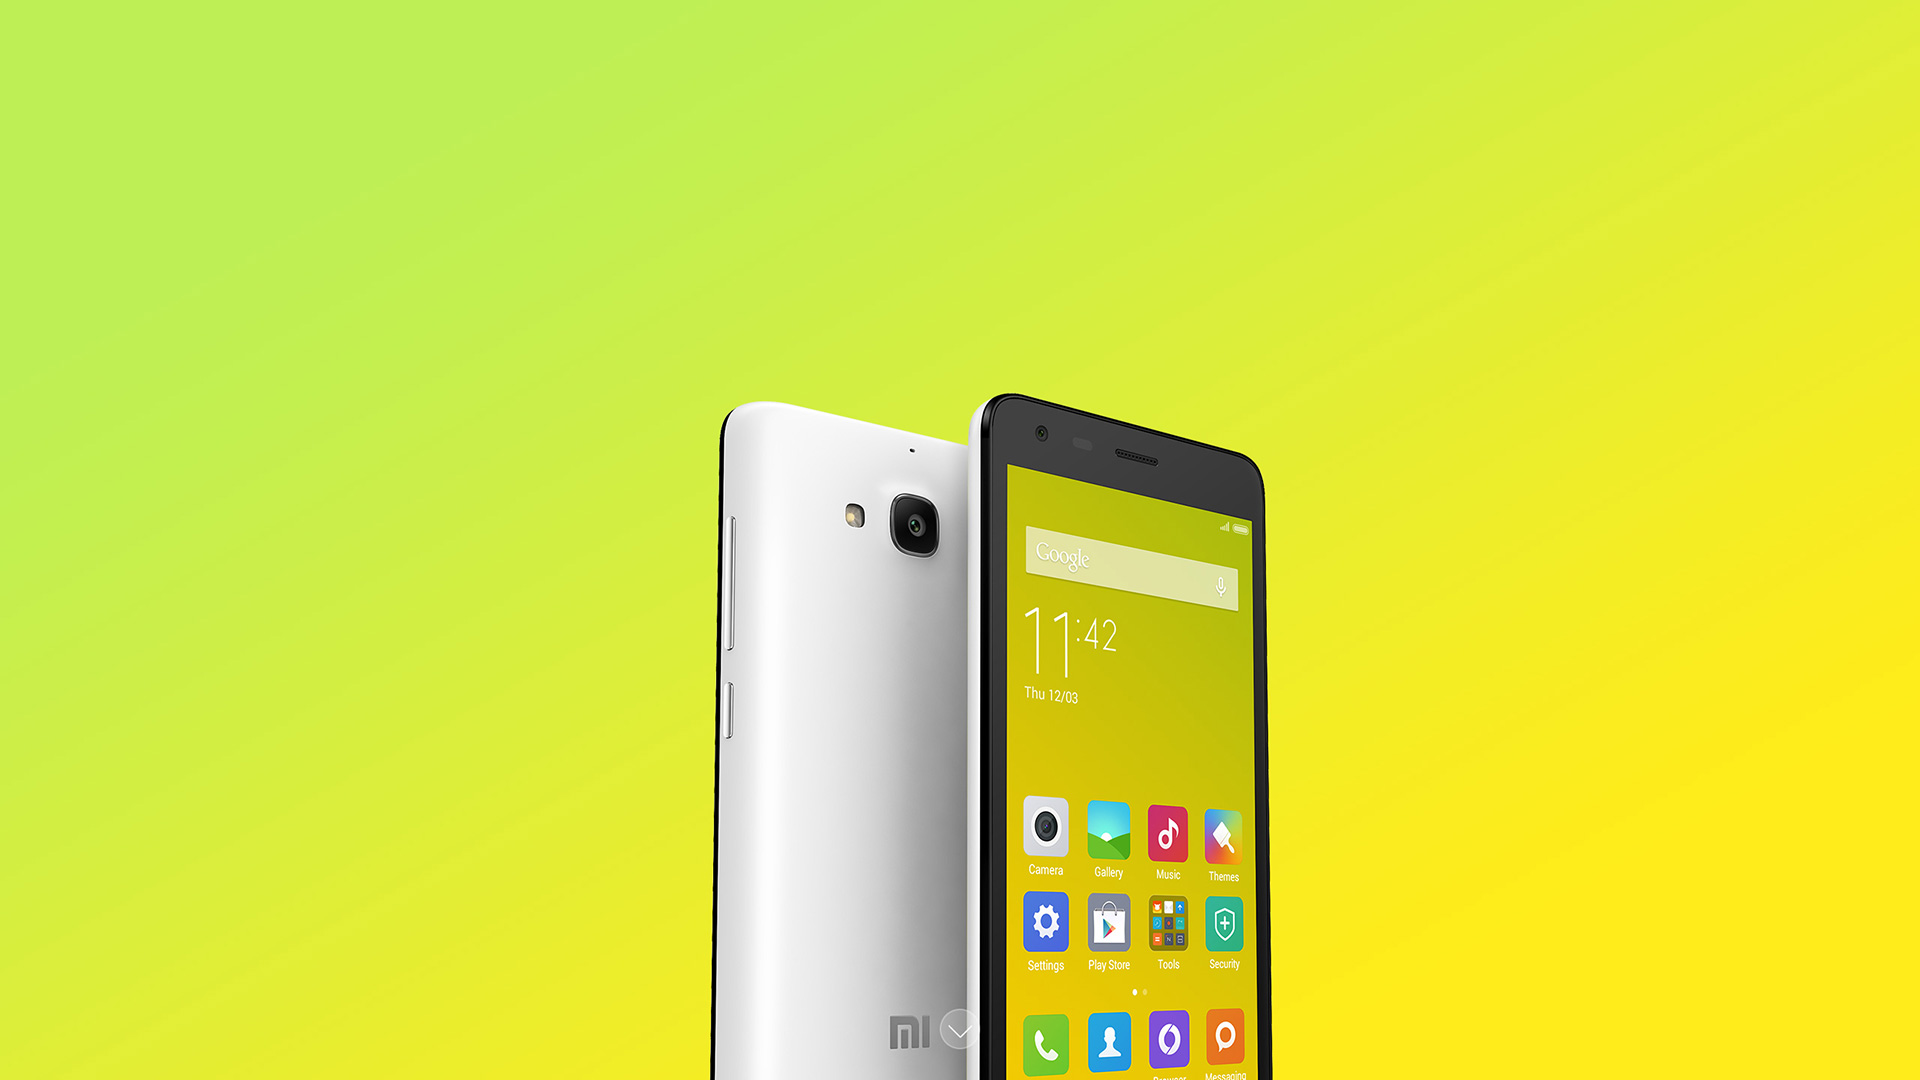 Download and Install MIUI 8.2.1 Global Stable ROM on Redmi 2 Prime